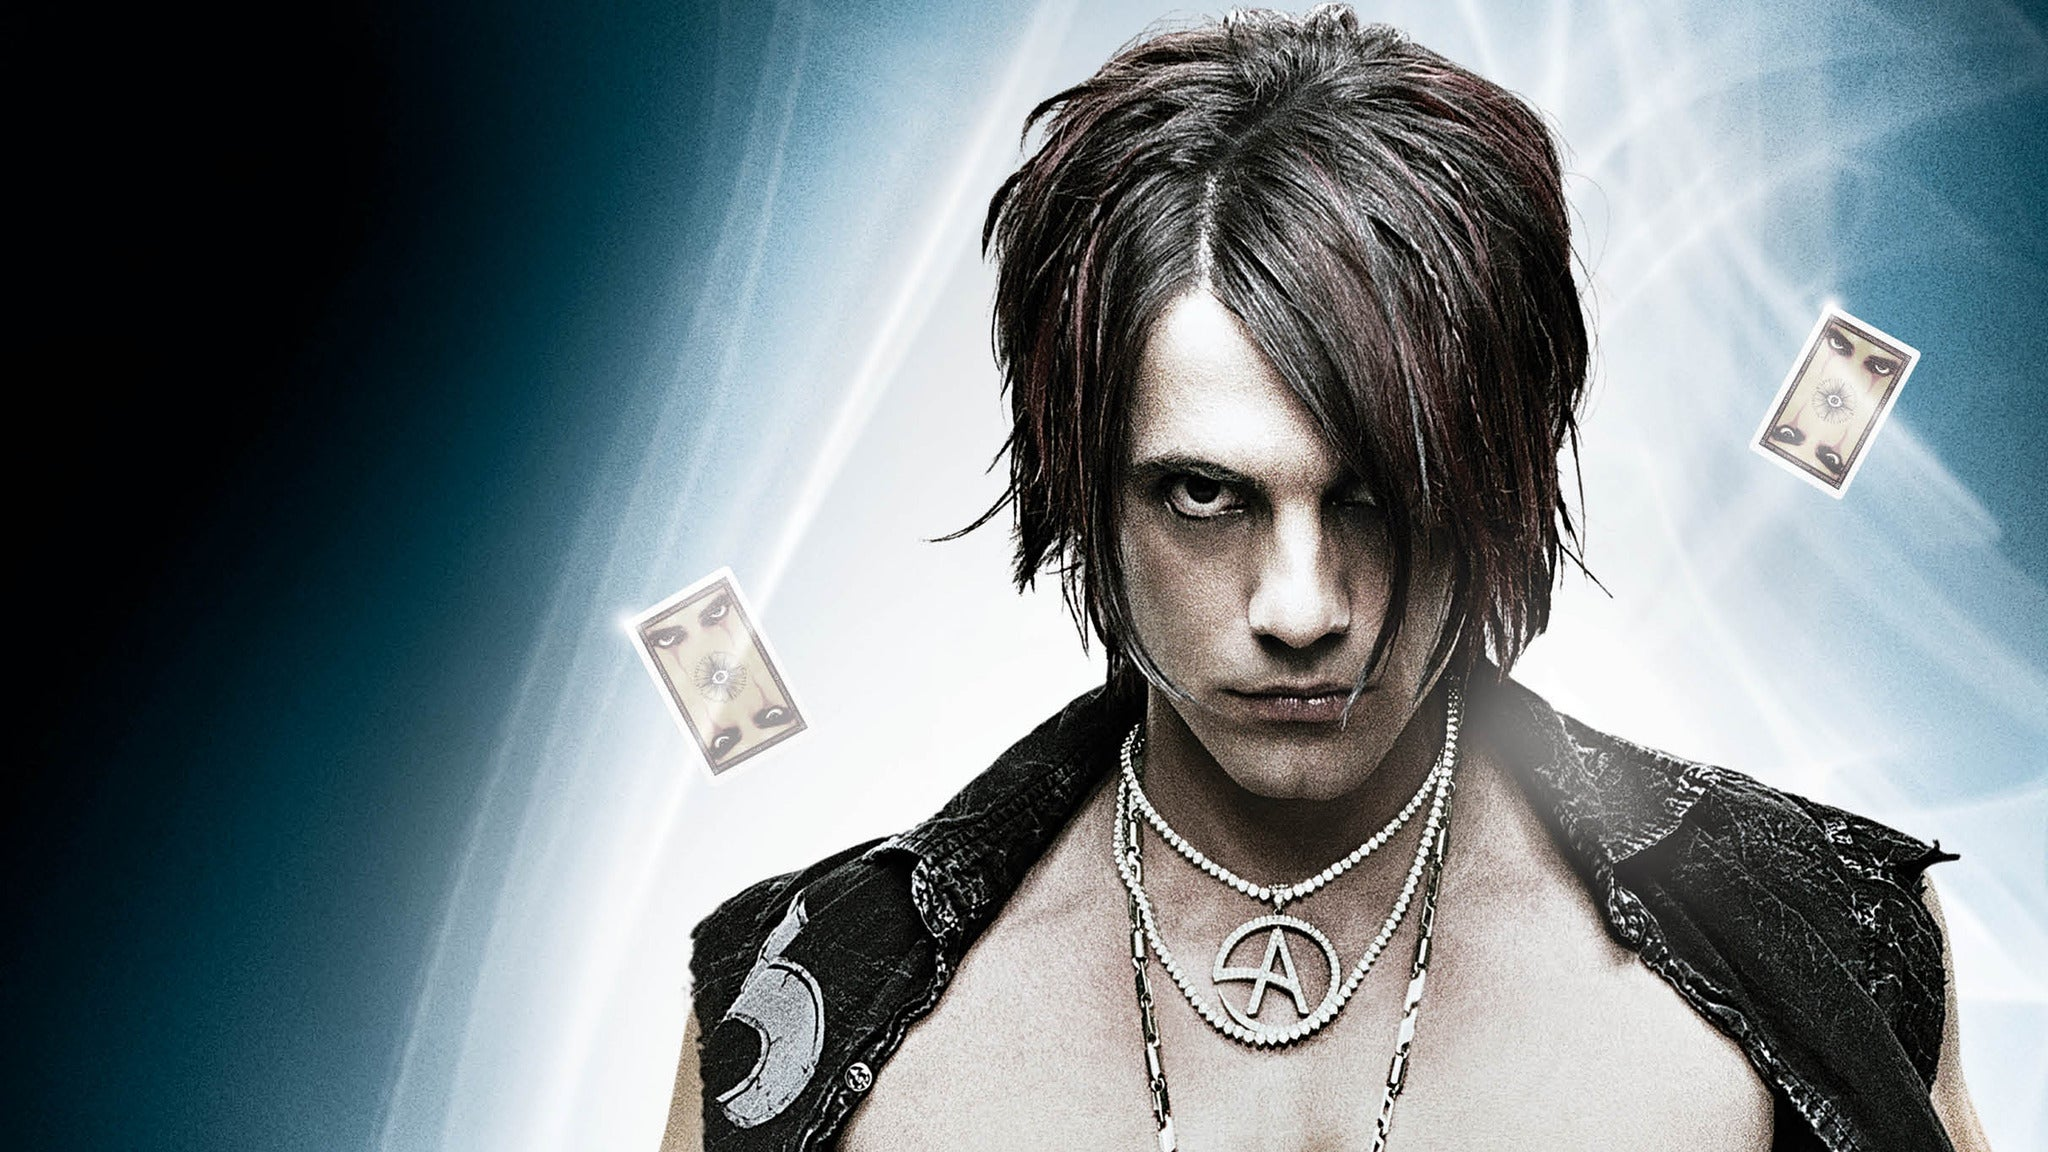 Criss Angel MINDFREAK LIVE! (Las Vegas) - Mashantucket, CT 06355